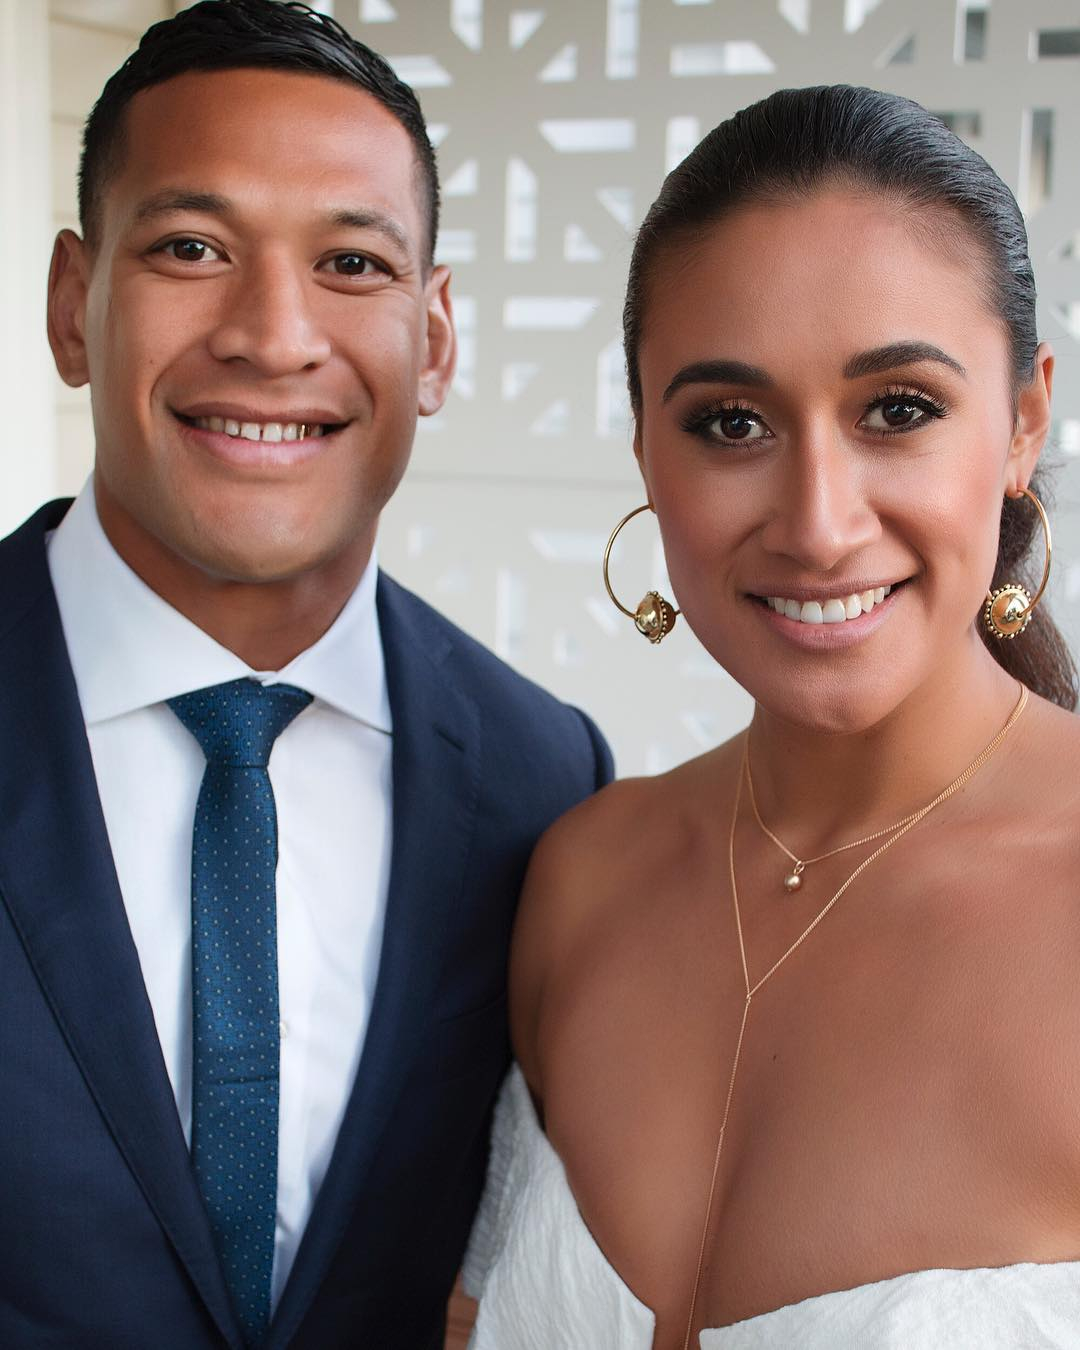 Folau with his wife Maria gave a sermon at The Truth of Jesus Christ Church in Sydney